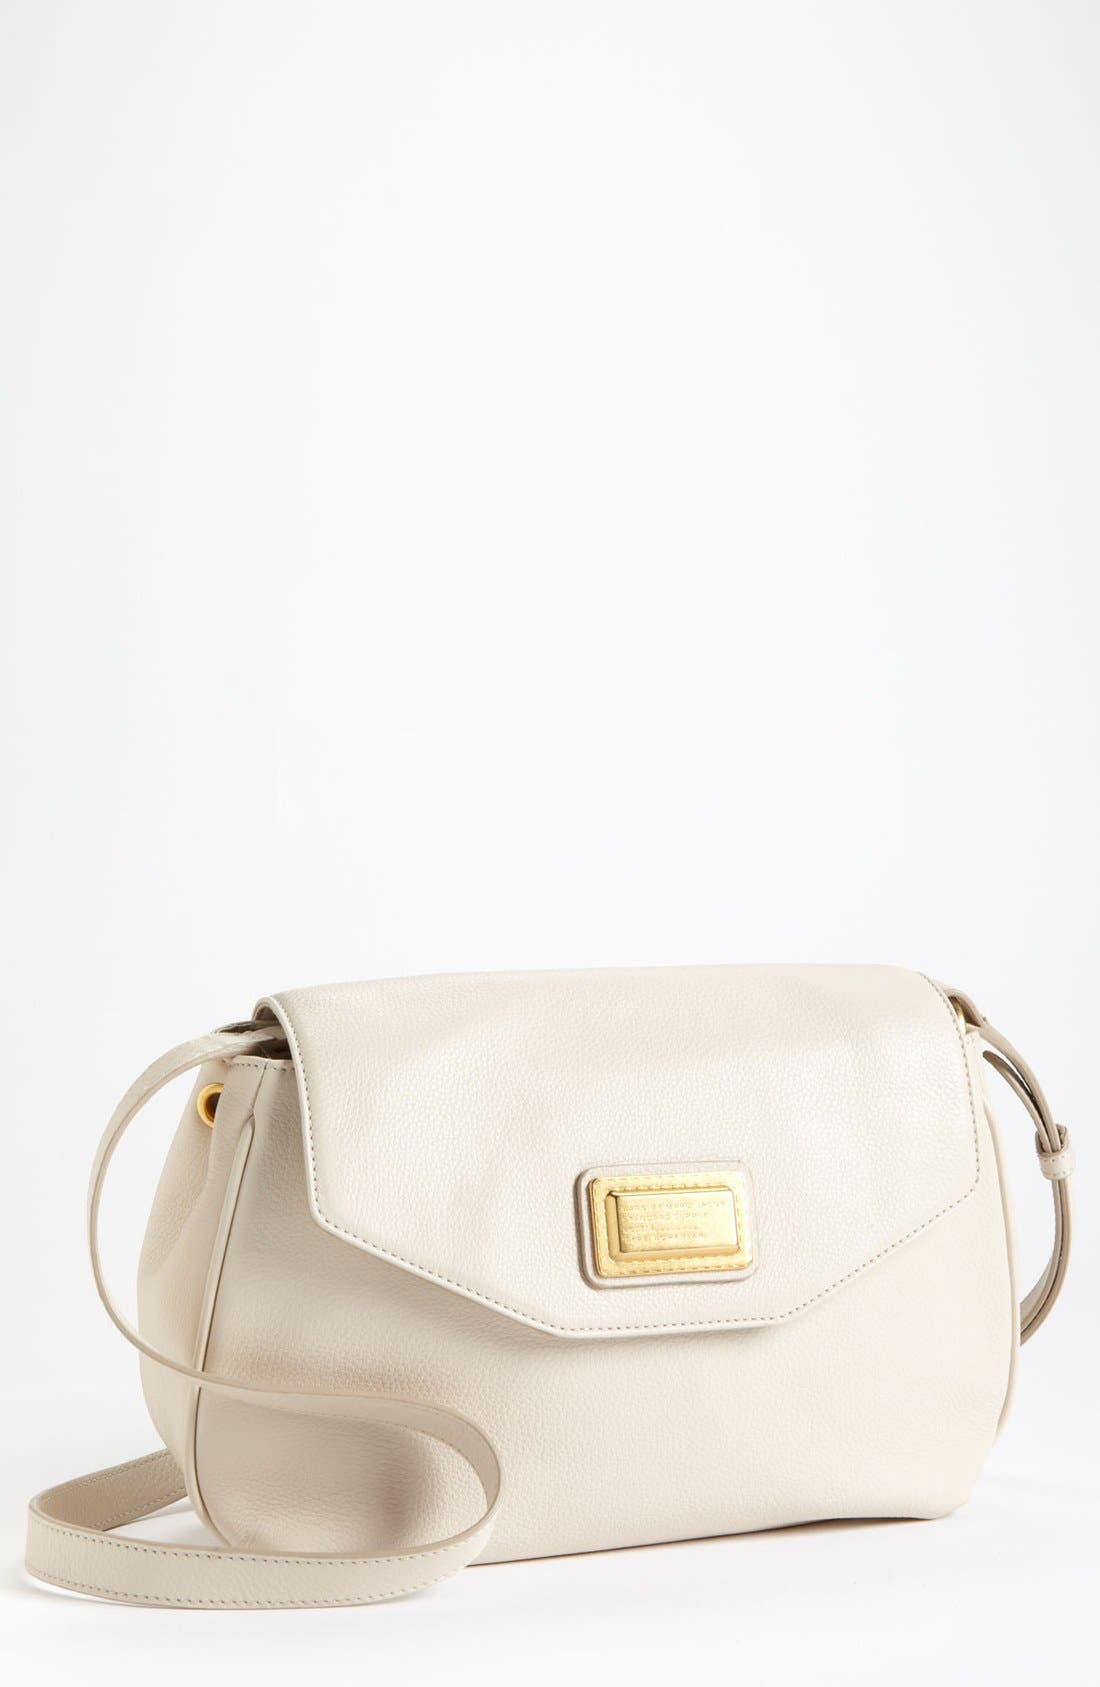 Alternate Image 1 Selected - MARC BY MARC JACOBS 'Medium Flap' Leather Crossbody Bag